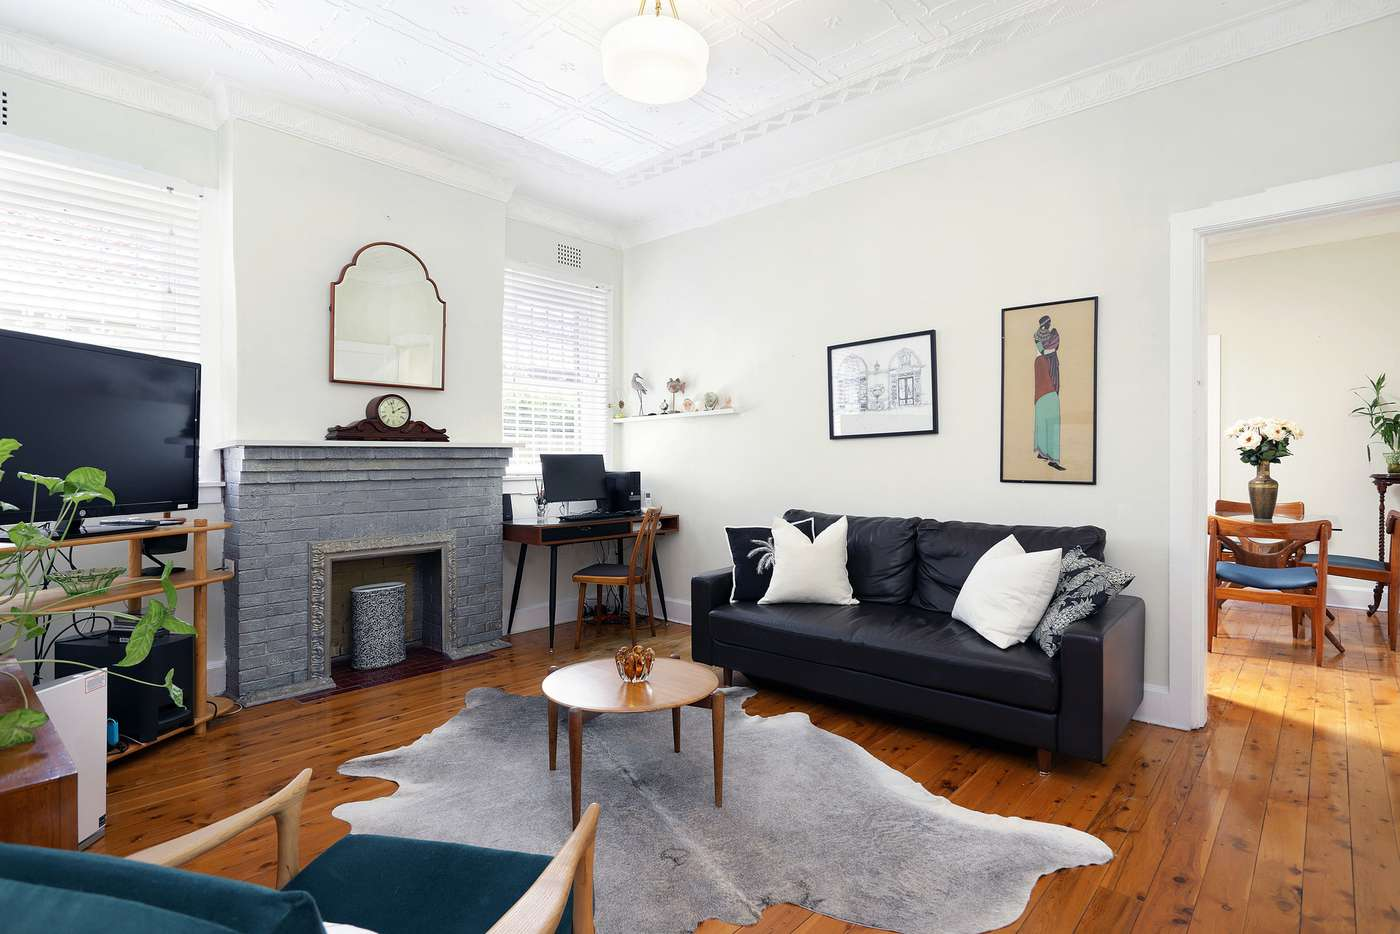 Main view of Homely house listing, 48 Holmes Street, Maroubra NSW 2035